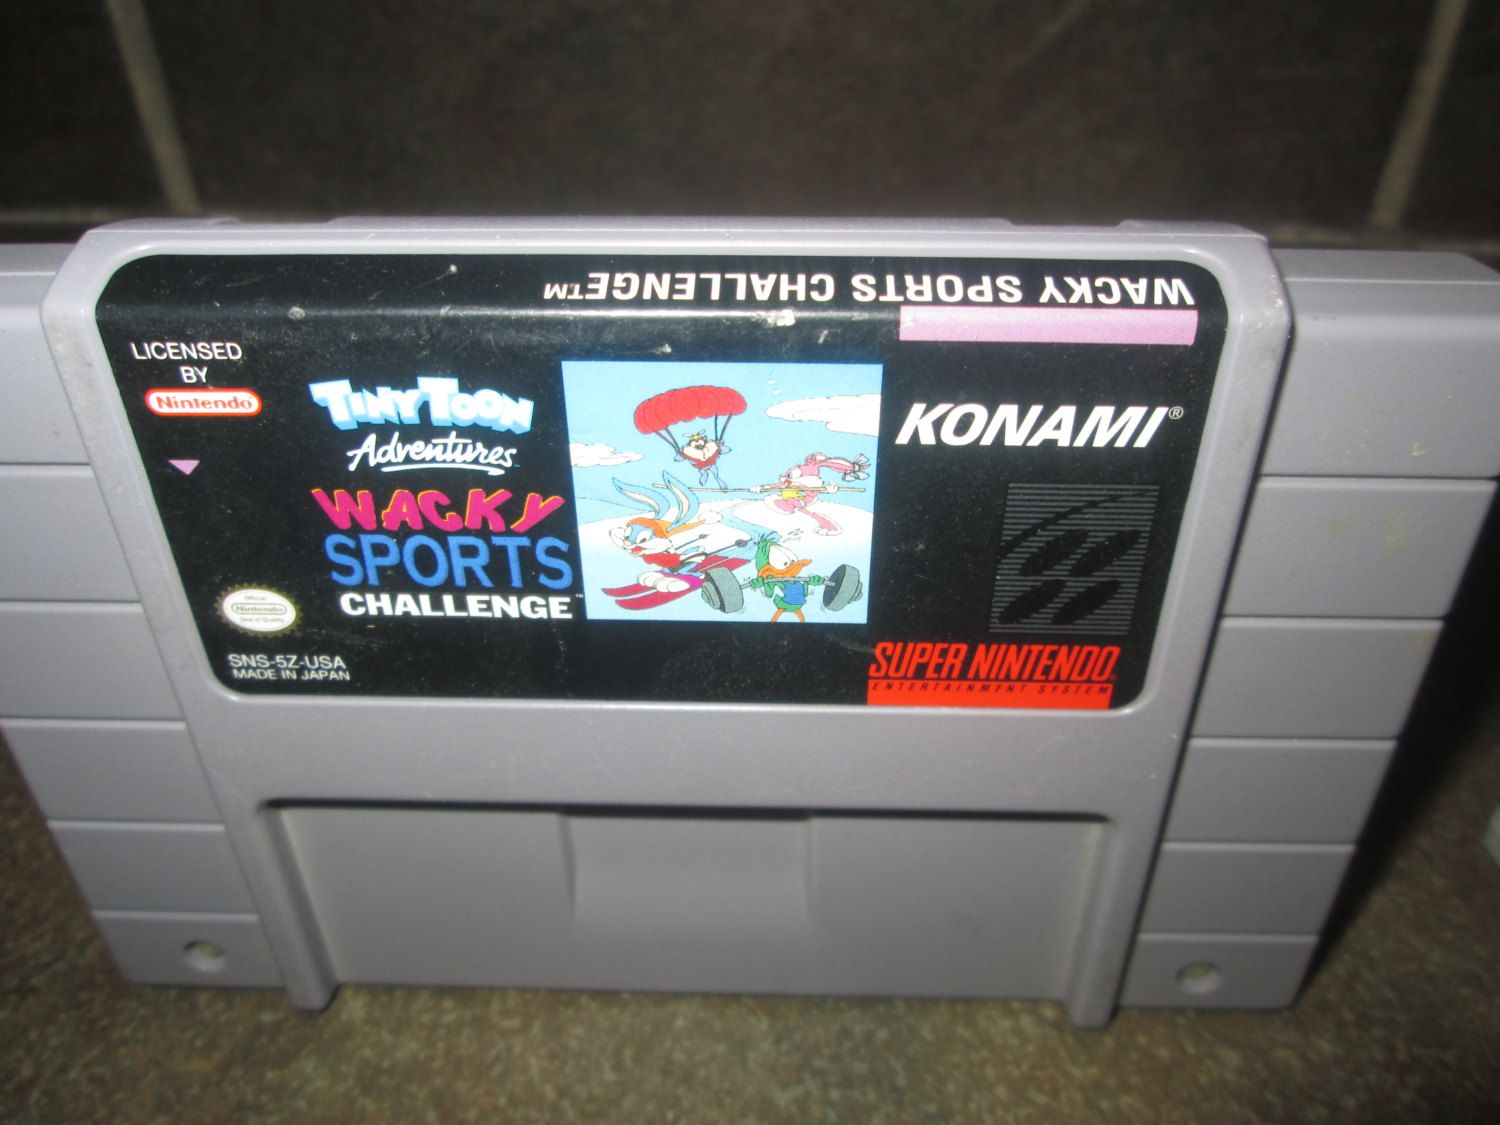 Super Nintendo Video Game, Tiny Toons Adventures Whacky Sports Challange, Classic Sports Game Cartridge, by FriendsRetro on Etsy